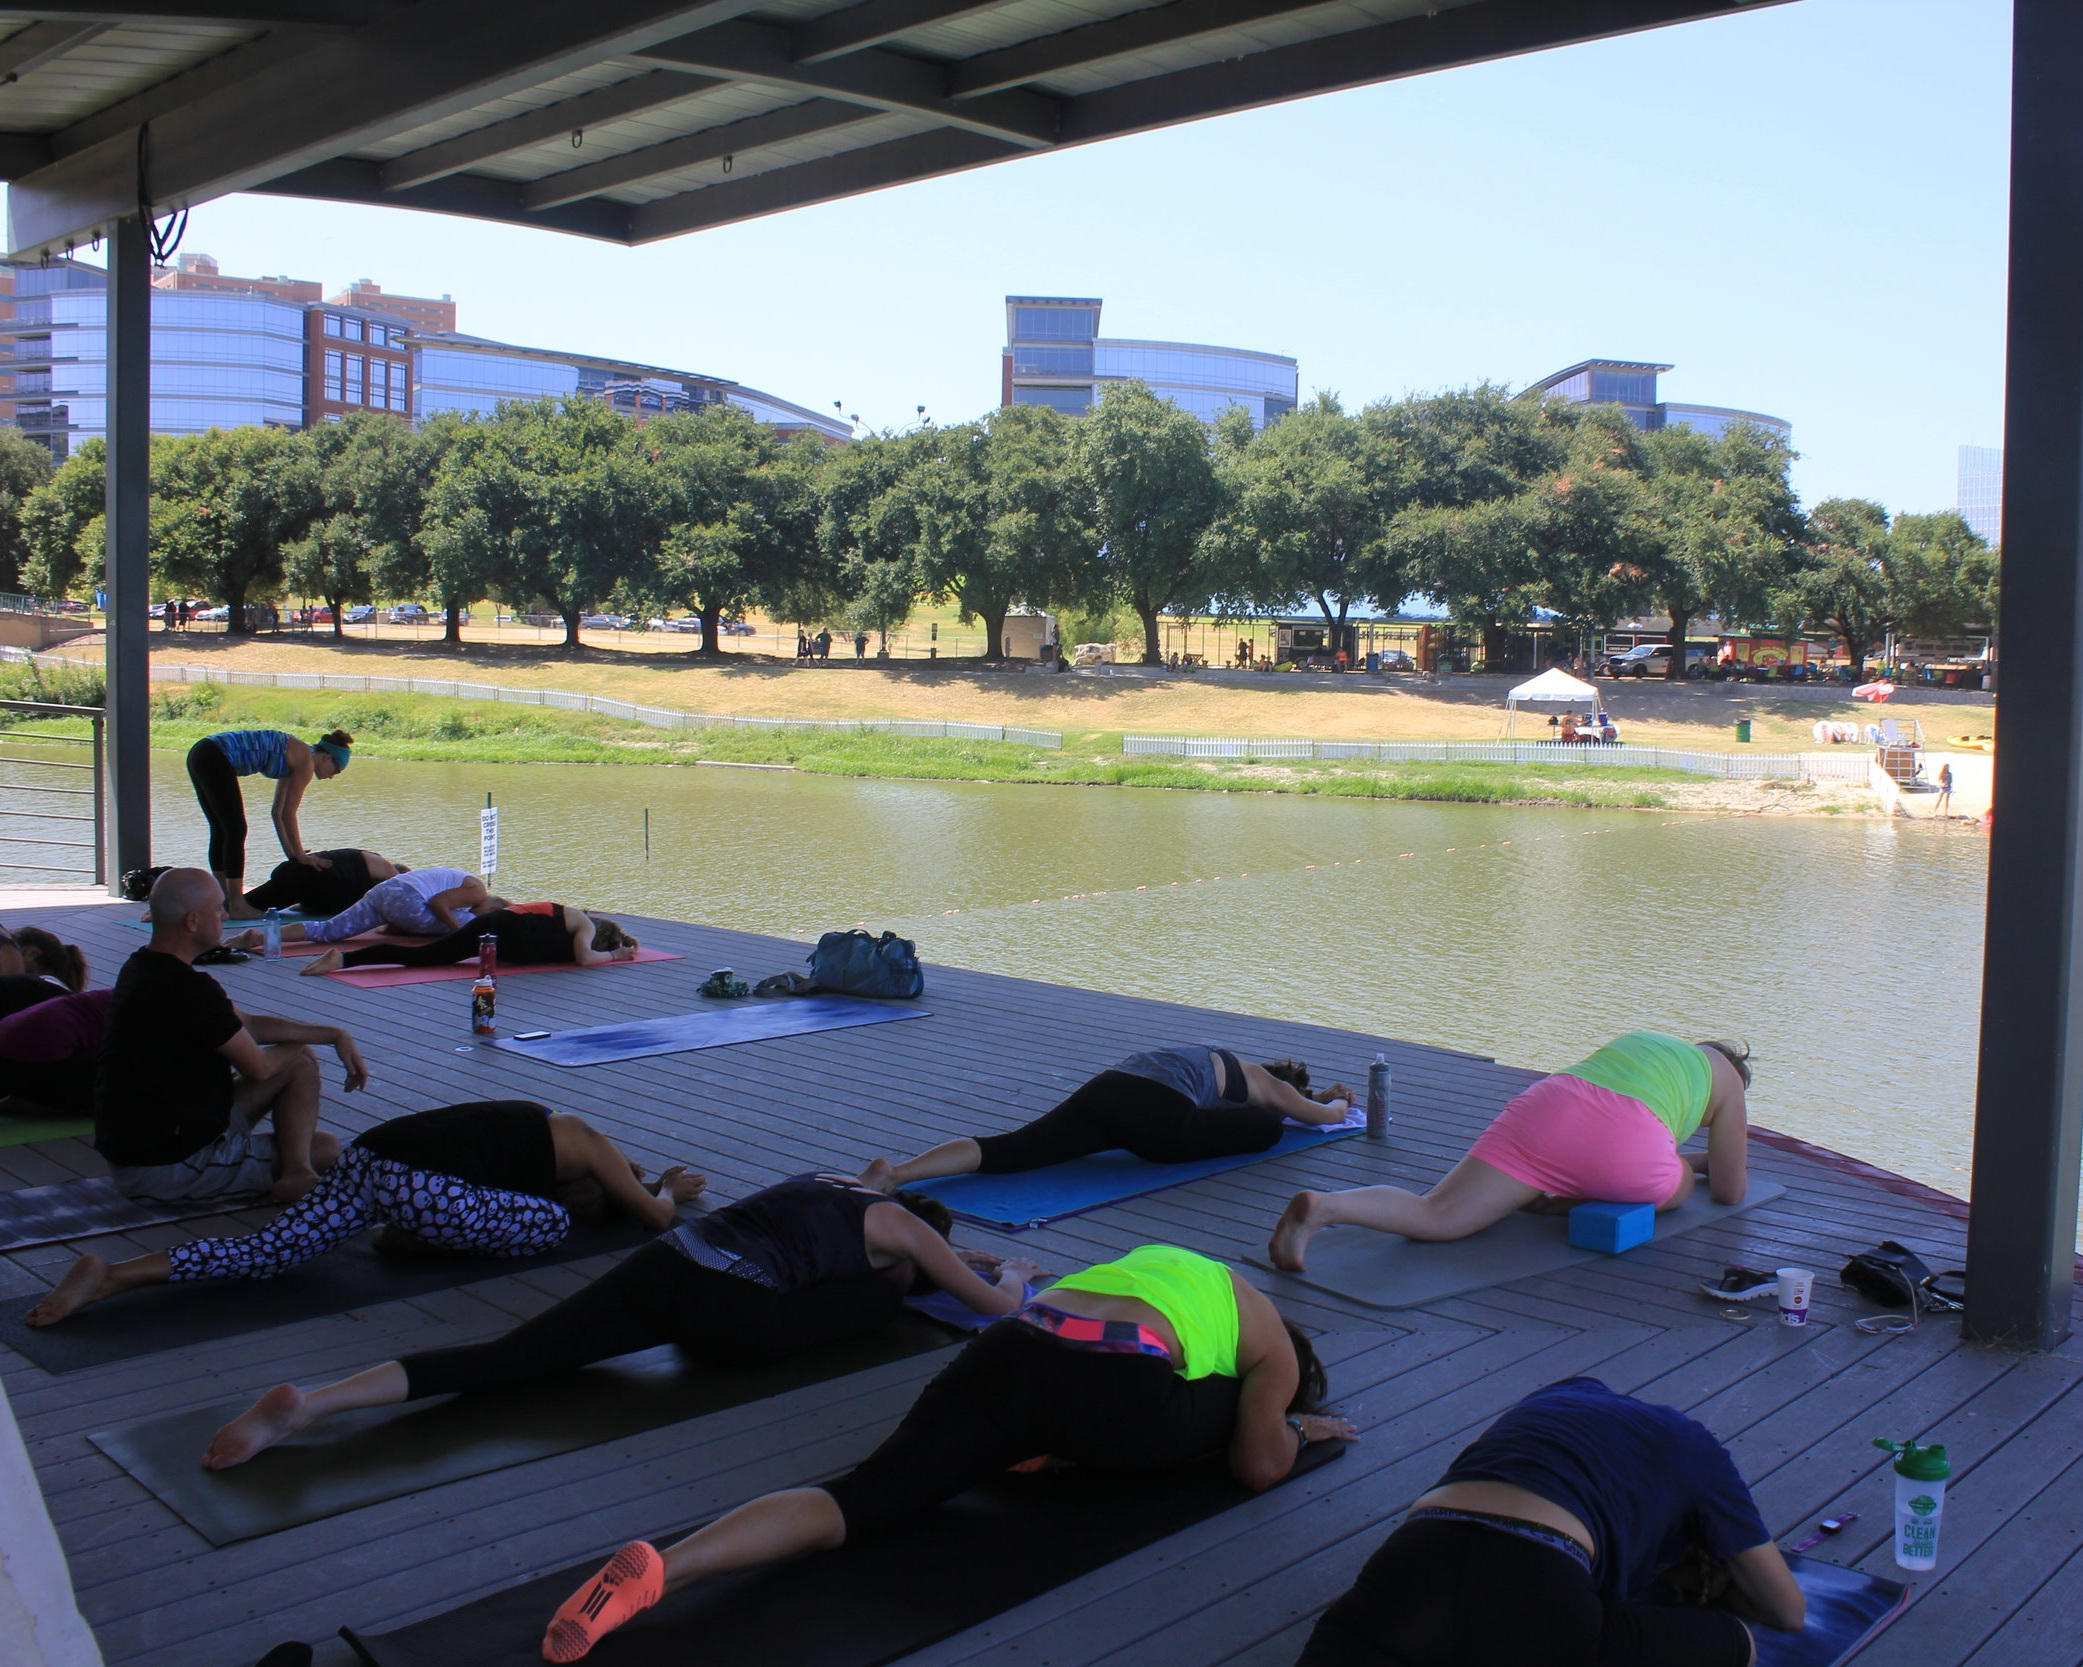 Zenday Fundays - Stand Up Paddleboard Yoga by Just Be Well YogaWeekly from 9:30-11:00am EXCEPT JUNE 30$40/Week. Limited Space.To attend, preregistration required. Please note: A minimum of 3 people required for the class.Waterfront Yoga by Blue Morpho YogaWeekly from 11:00am - 12:00pmFree Class. All tips will go to Teresita Mutis, a local yoga instructor, who lost her Daughter Ashton to breast cancer.Registration NOT required.